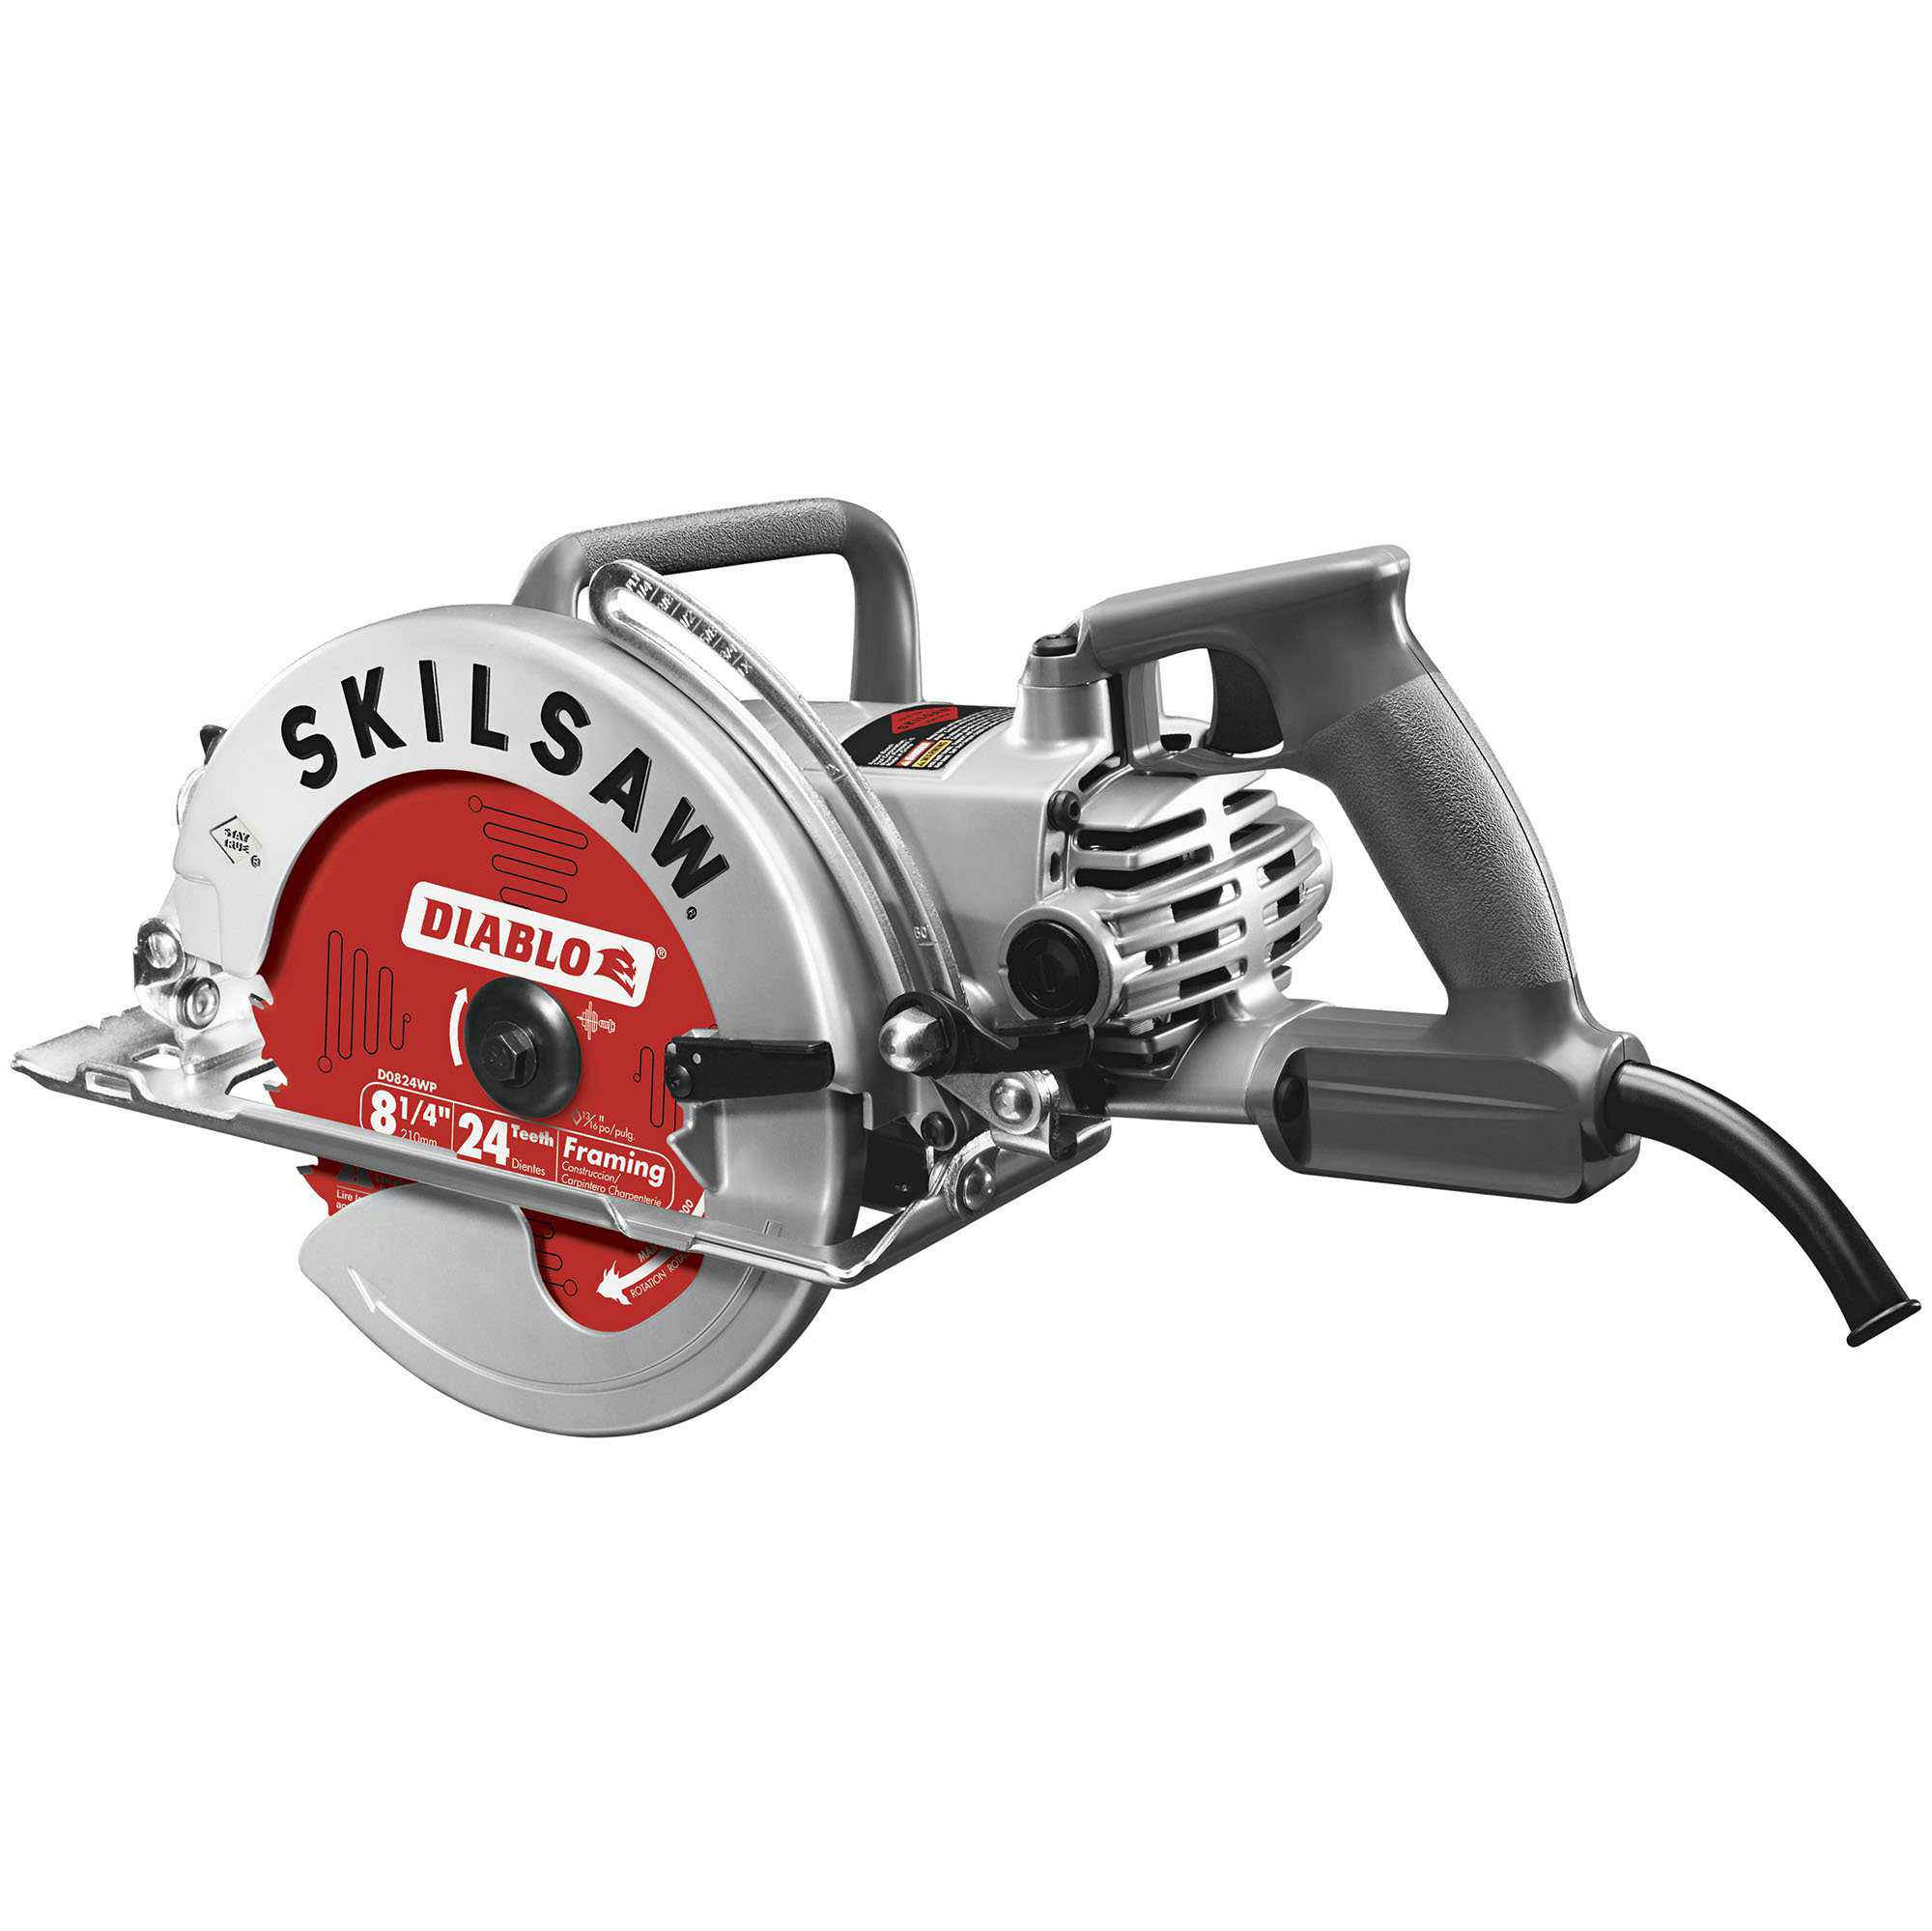 Skilsaw Diablo 8-1/4' 15 Amp Corded High Torque Motor Aluminum Worm Drive Saw